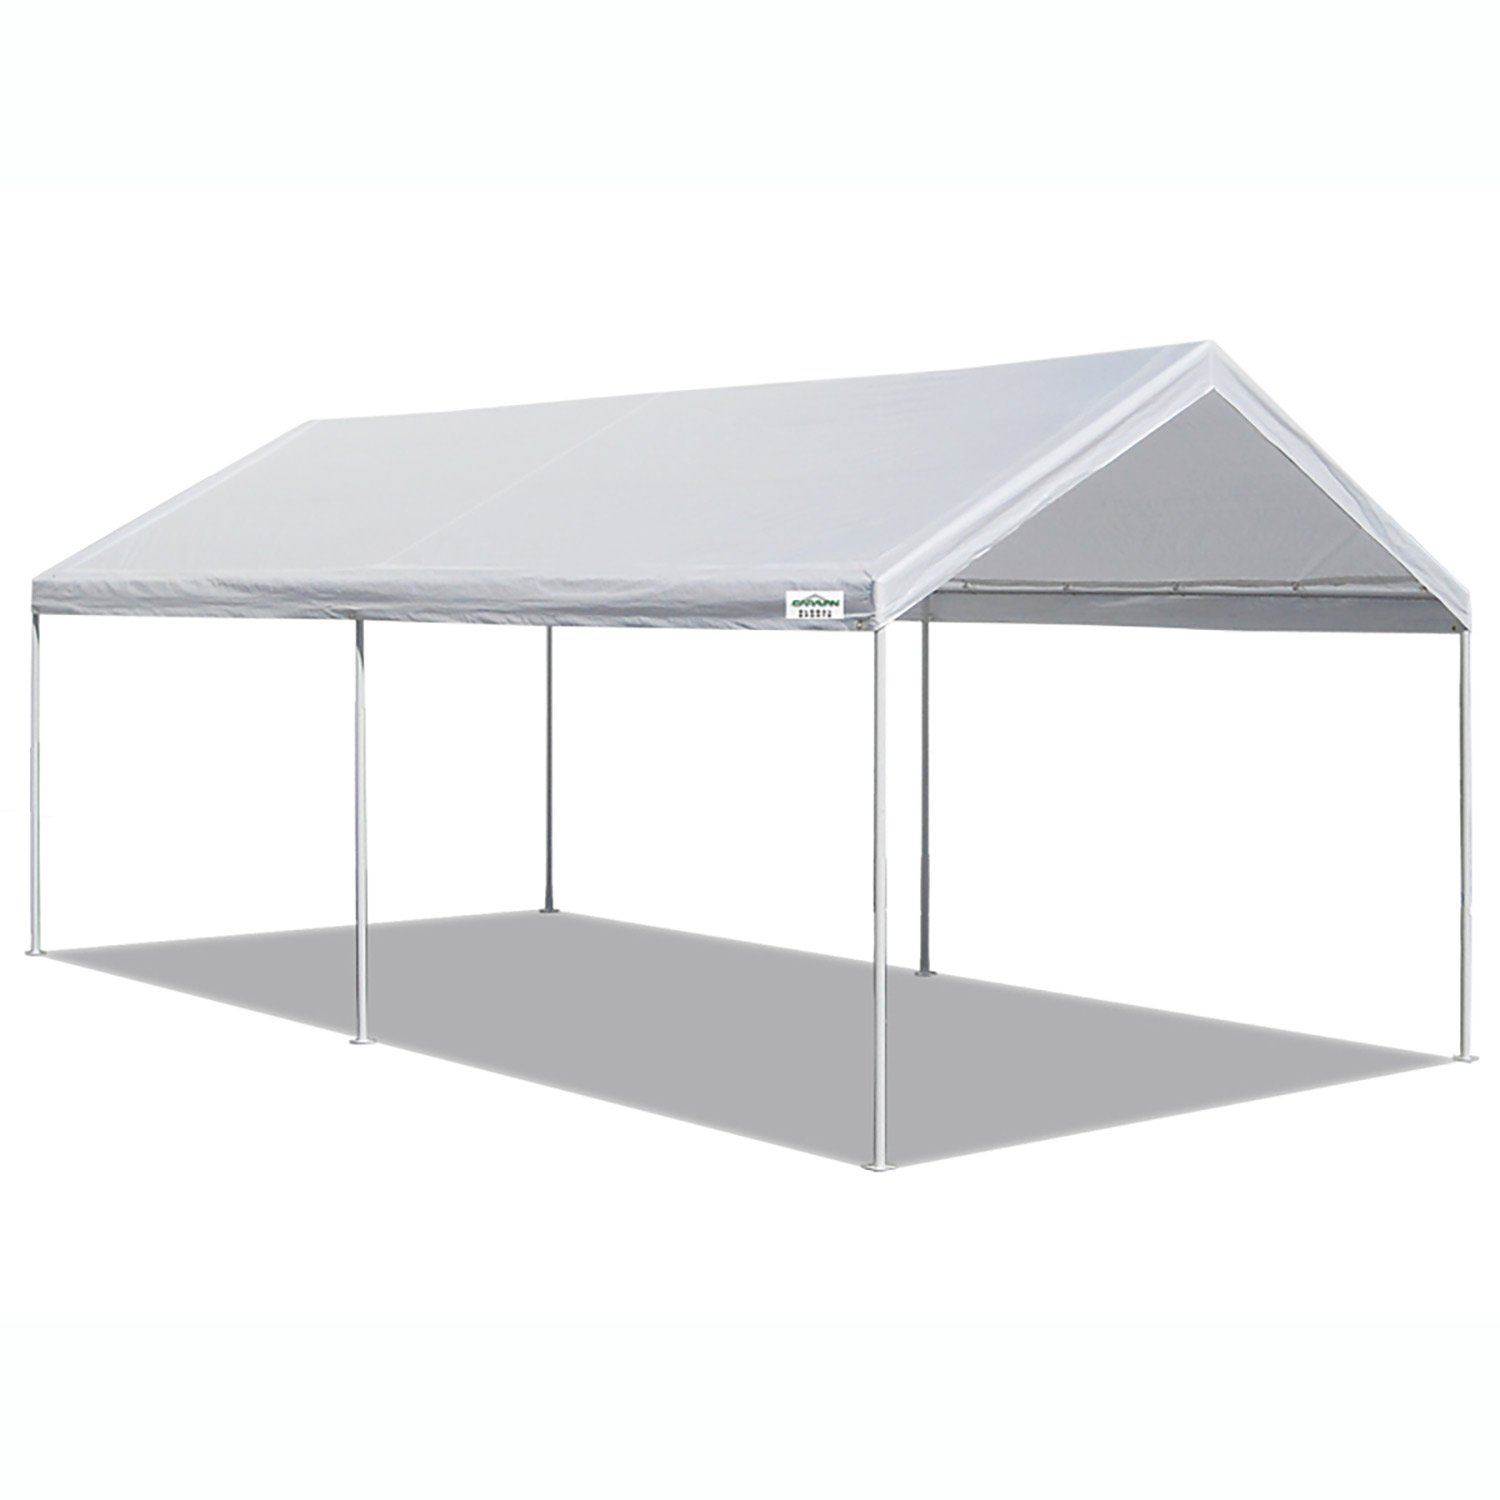 Caravan Canopy Sports 10' X 20' Domain Carport Garage (200 sq ft Coverage) by Caravan Canopy